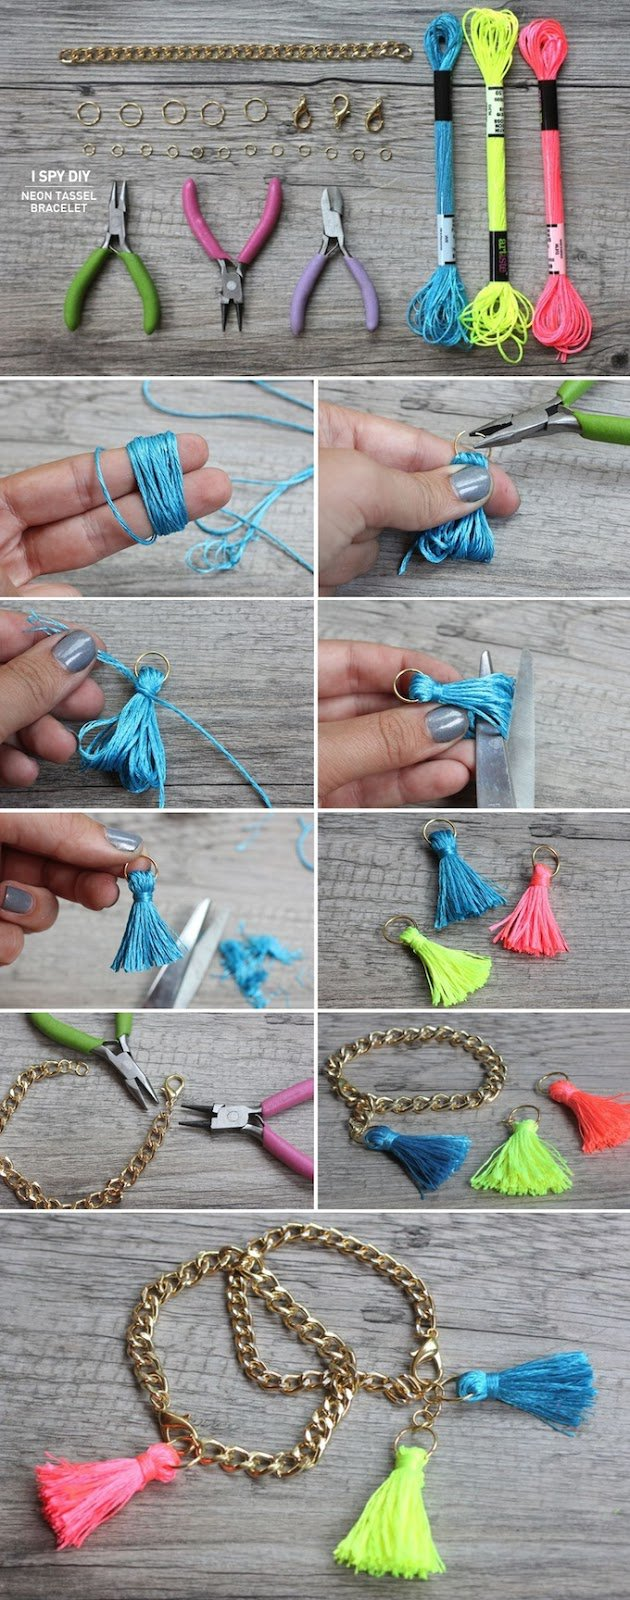 ispydiy_necklace_tassel